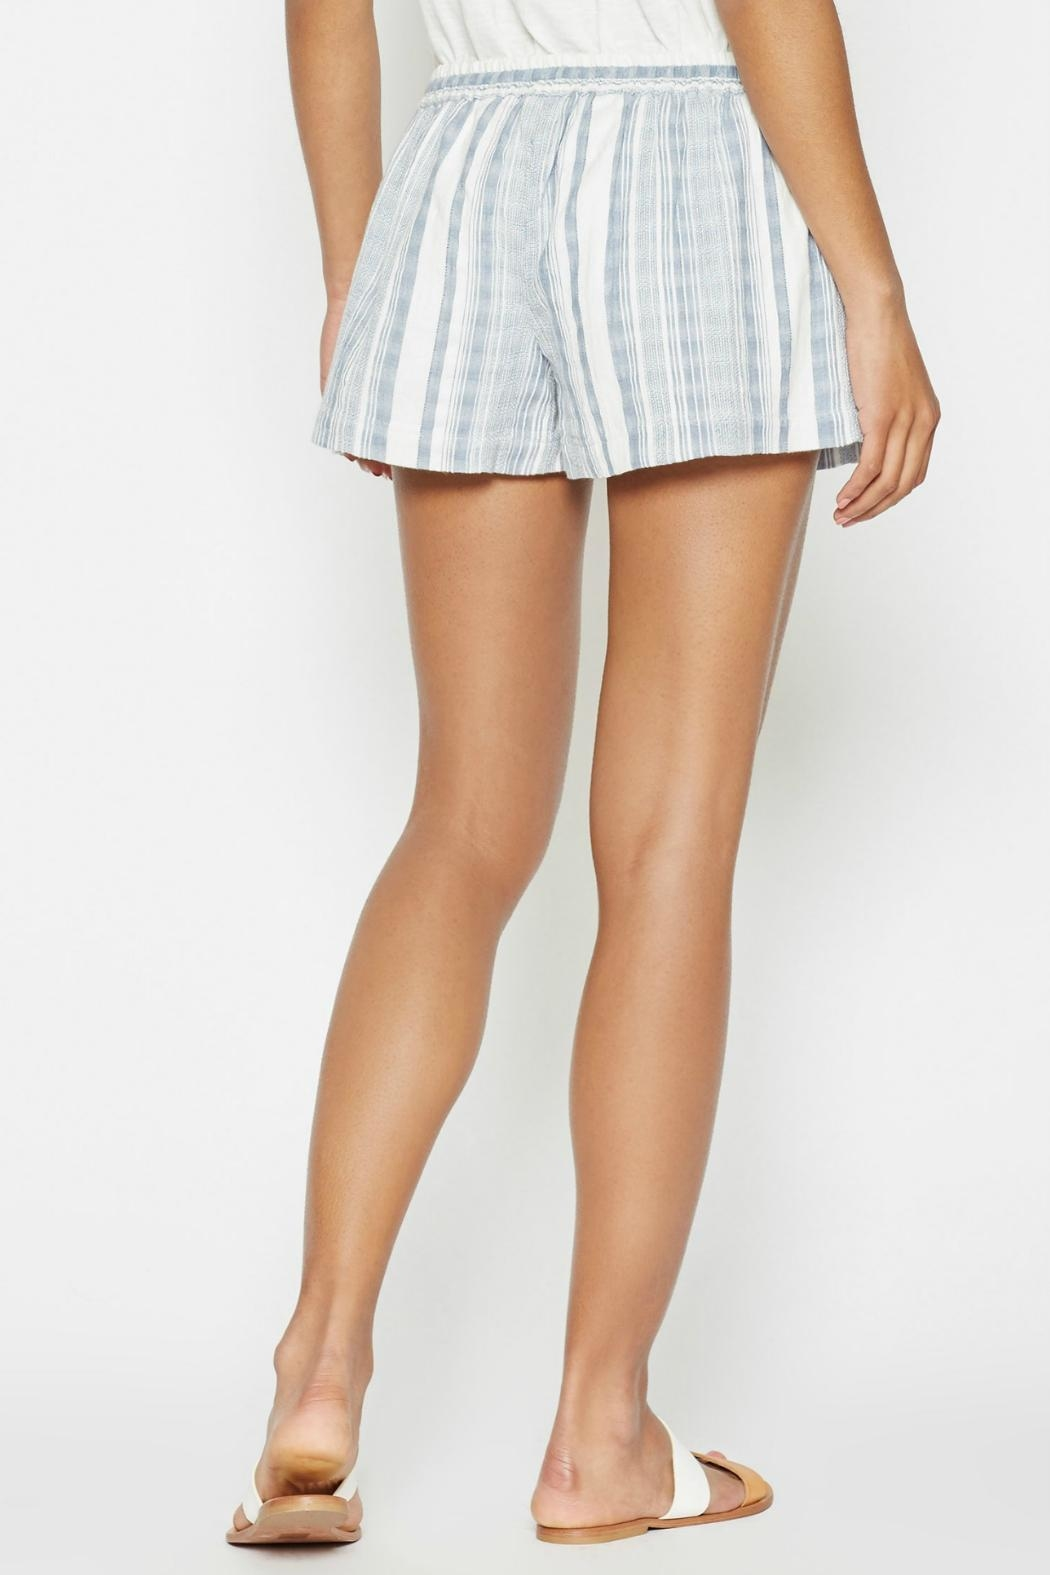 Joie Striped Comfy Shorts - Front Full Image